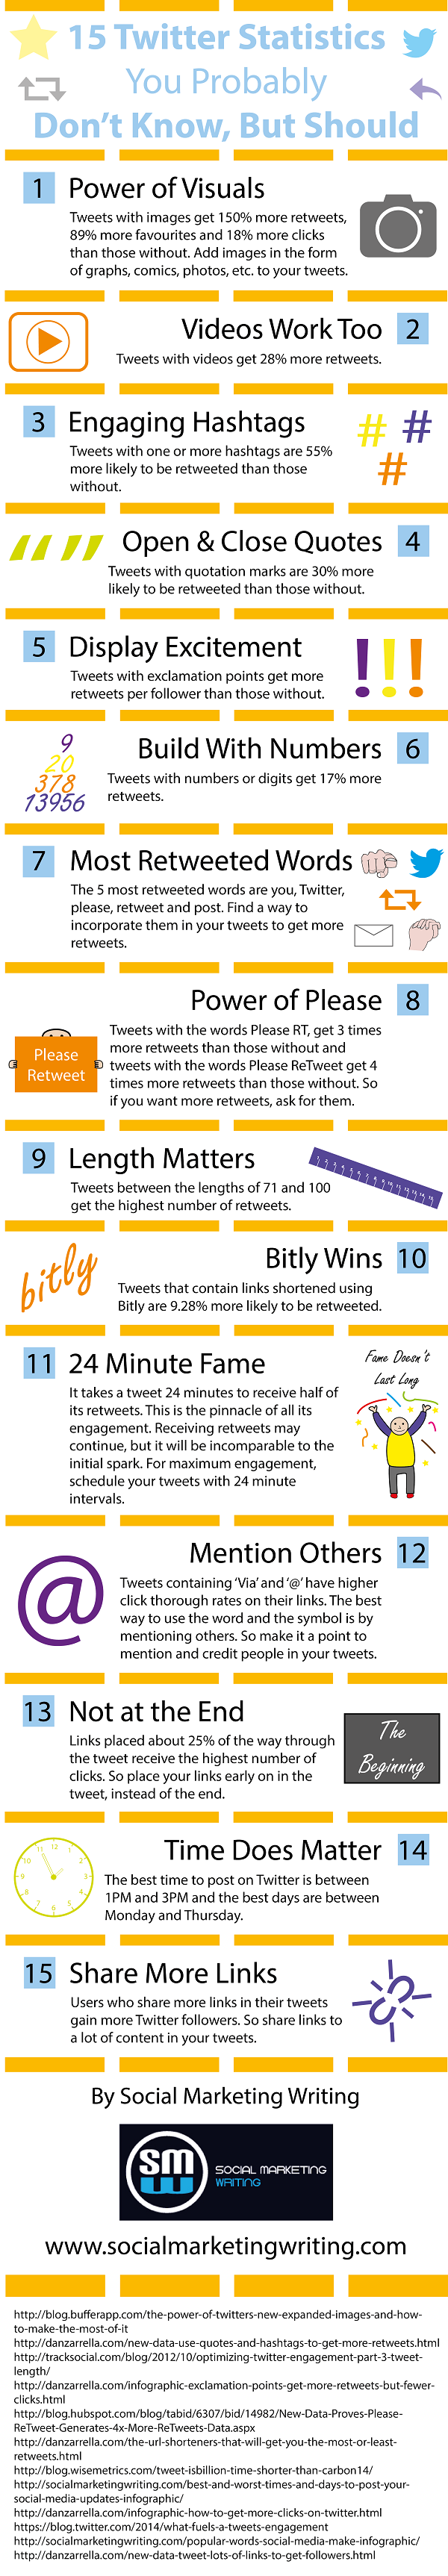 15-Twitter-Statistics-You-Probably-Don't-Know-But-Should-Infographic